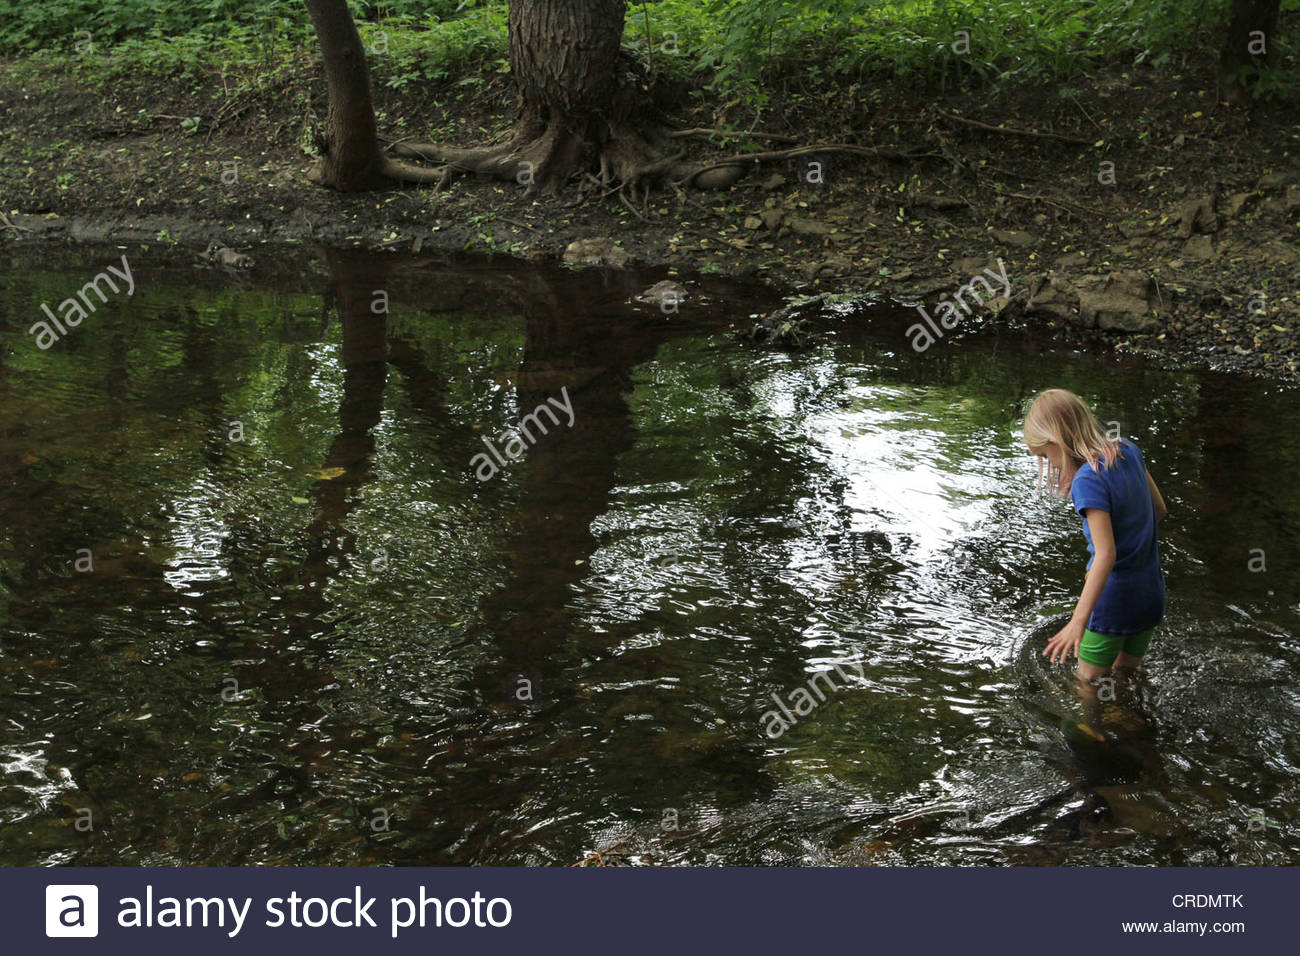 A young girl wading through a creek in Minneapolis. - Stock Image